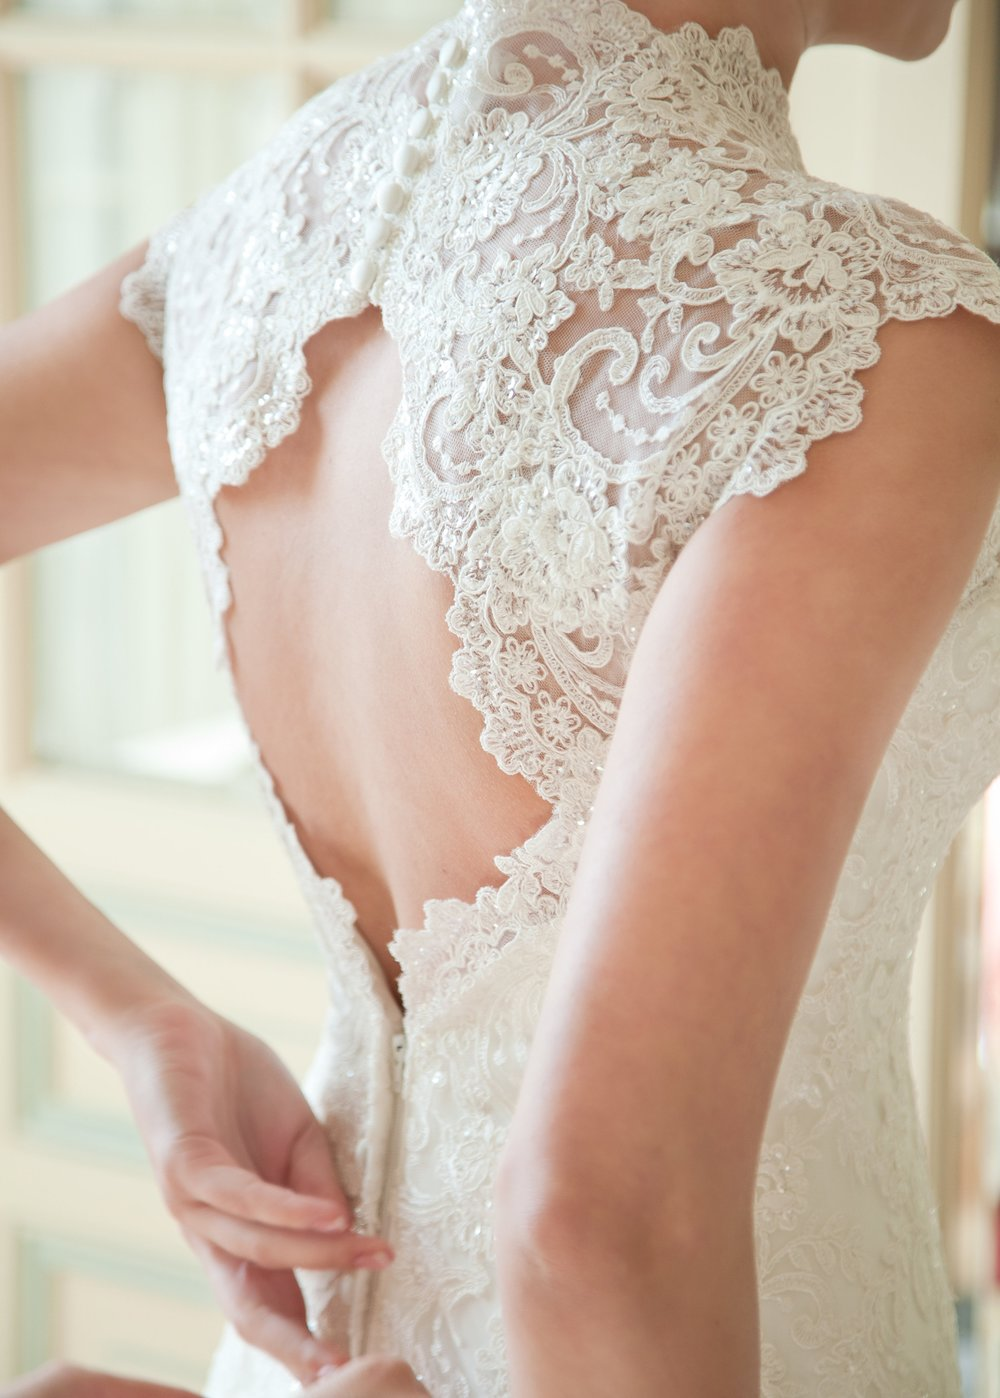 So many beautiful wedding dresses draw attention to the bride's back.